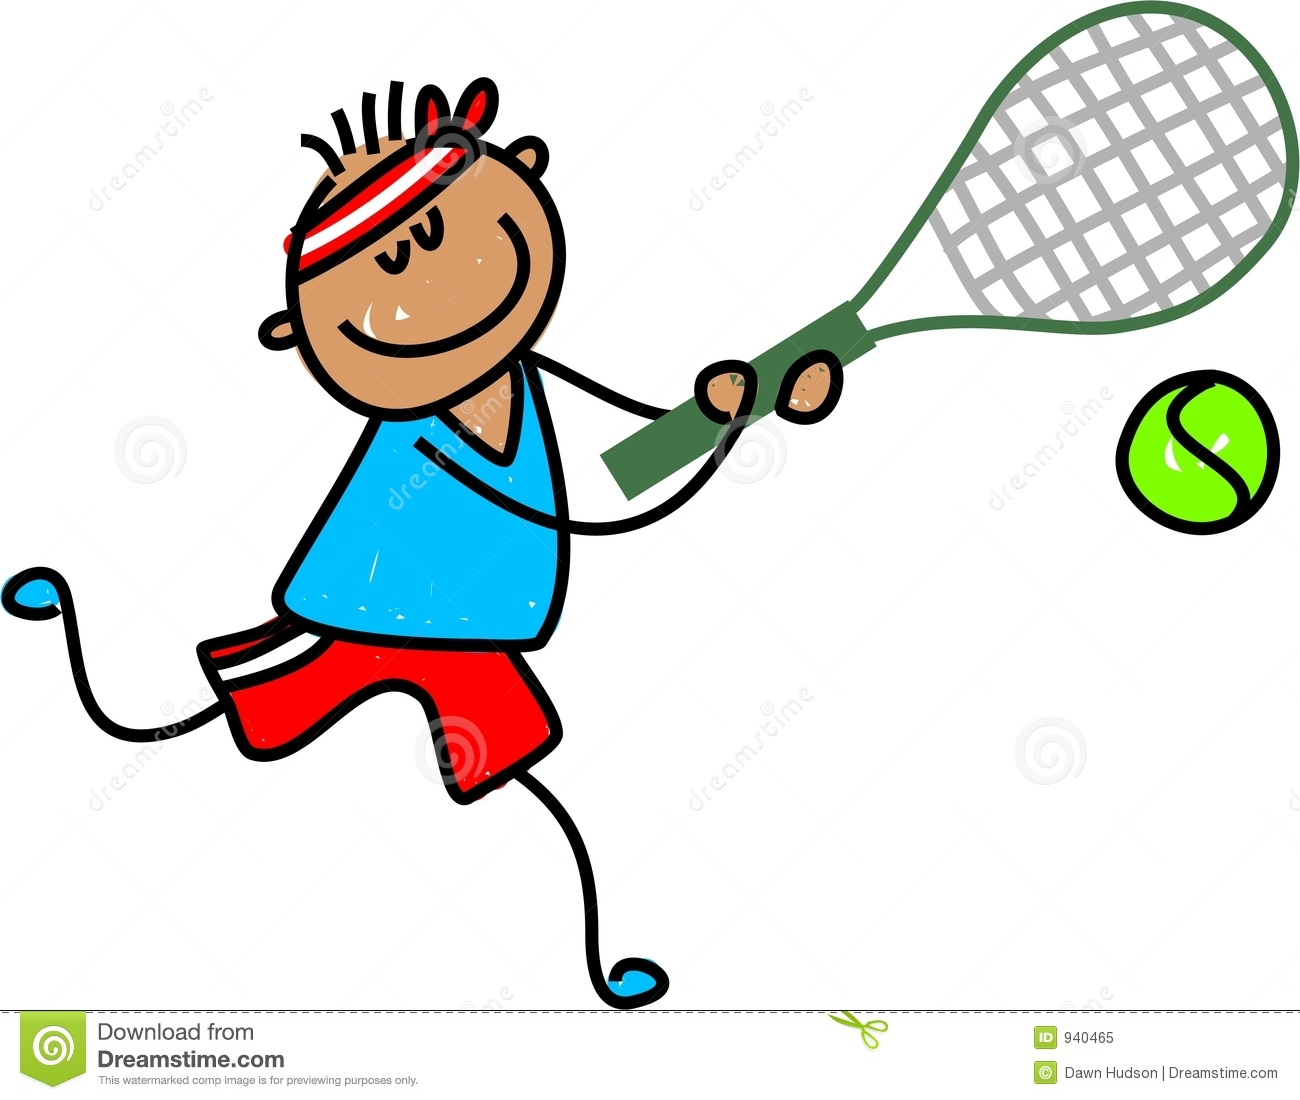 essay play tennis One of the most important pieces you'll enclose in that packet is your application essay as a junior tennis spent as much as half your life playing tennis.